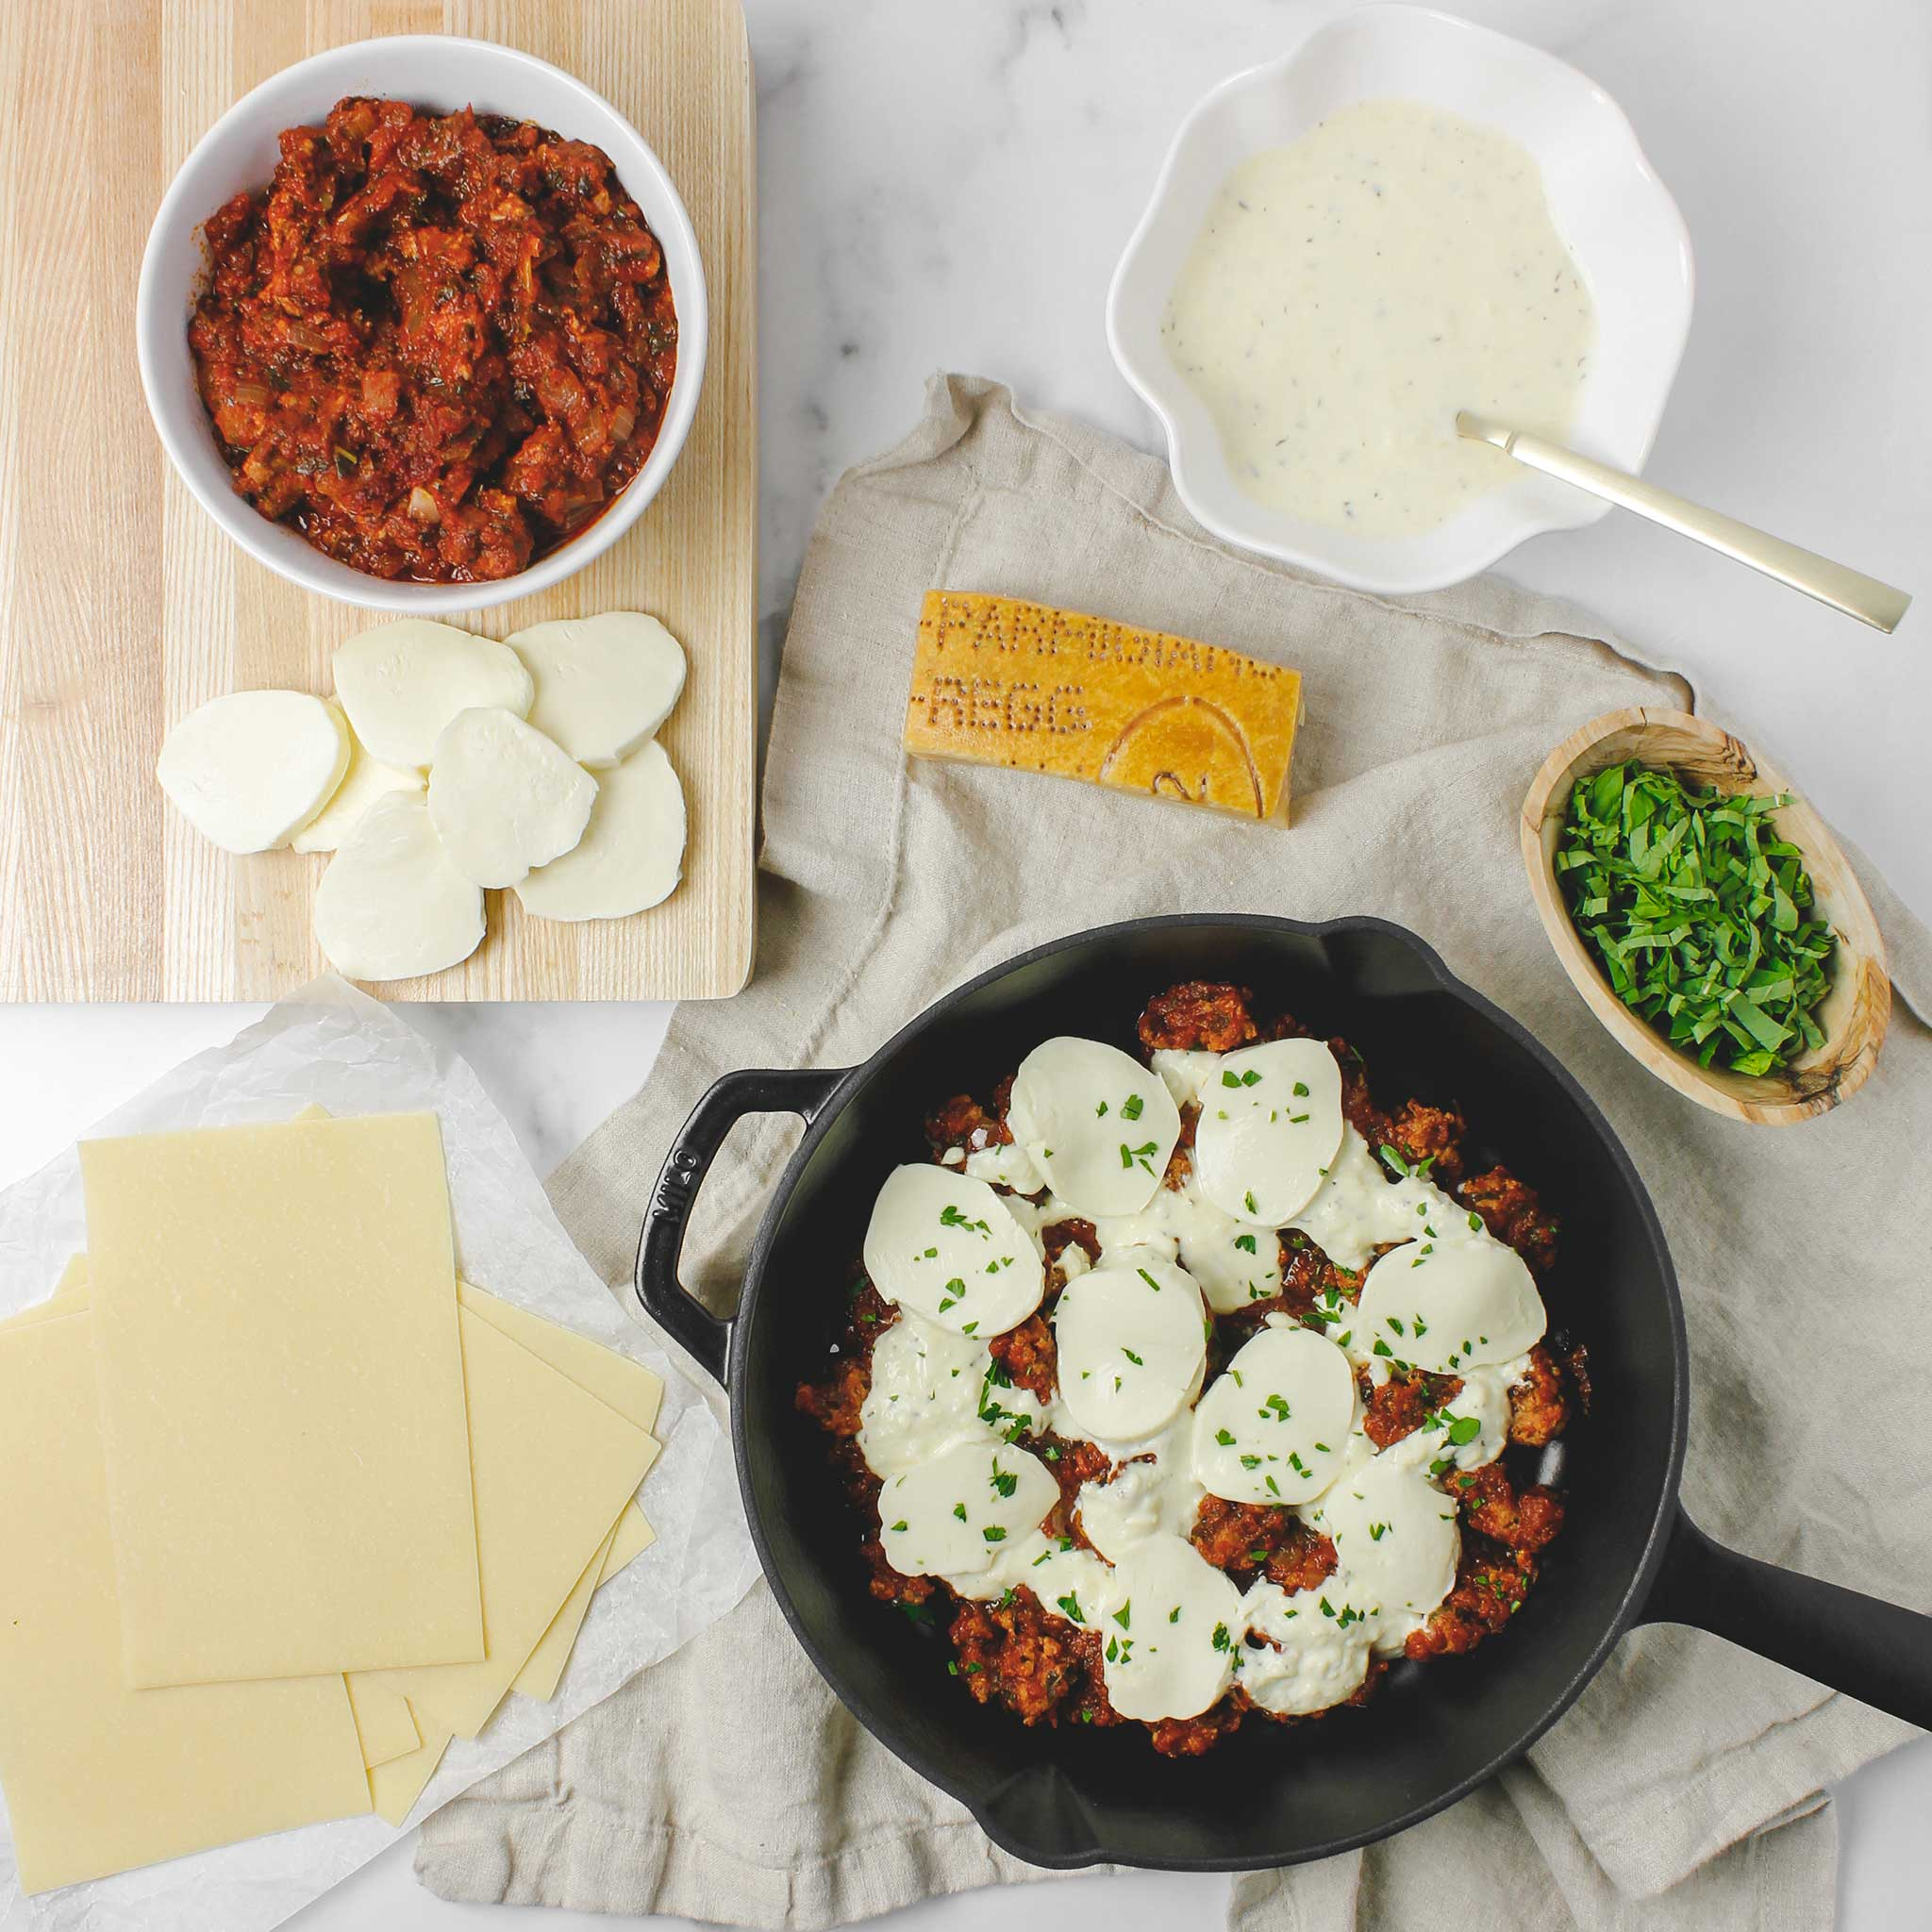 Gluten free skillet lasagna ingredients